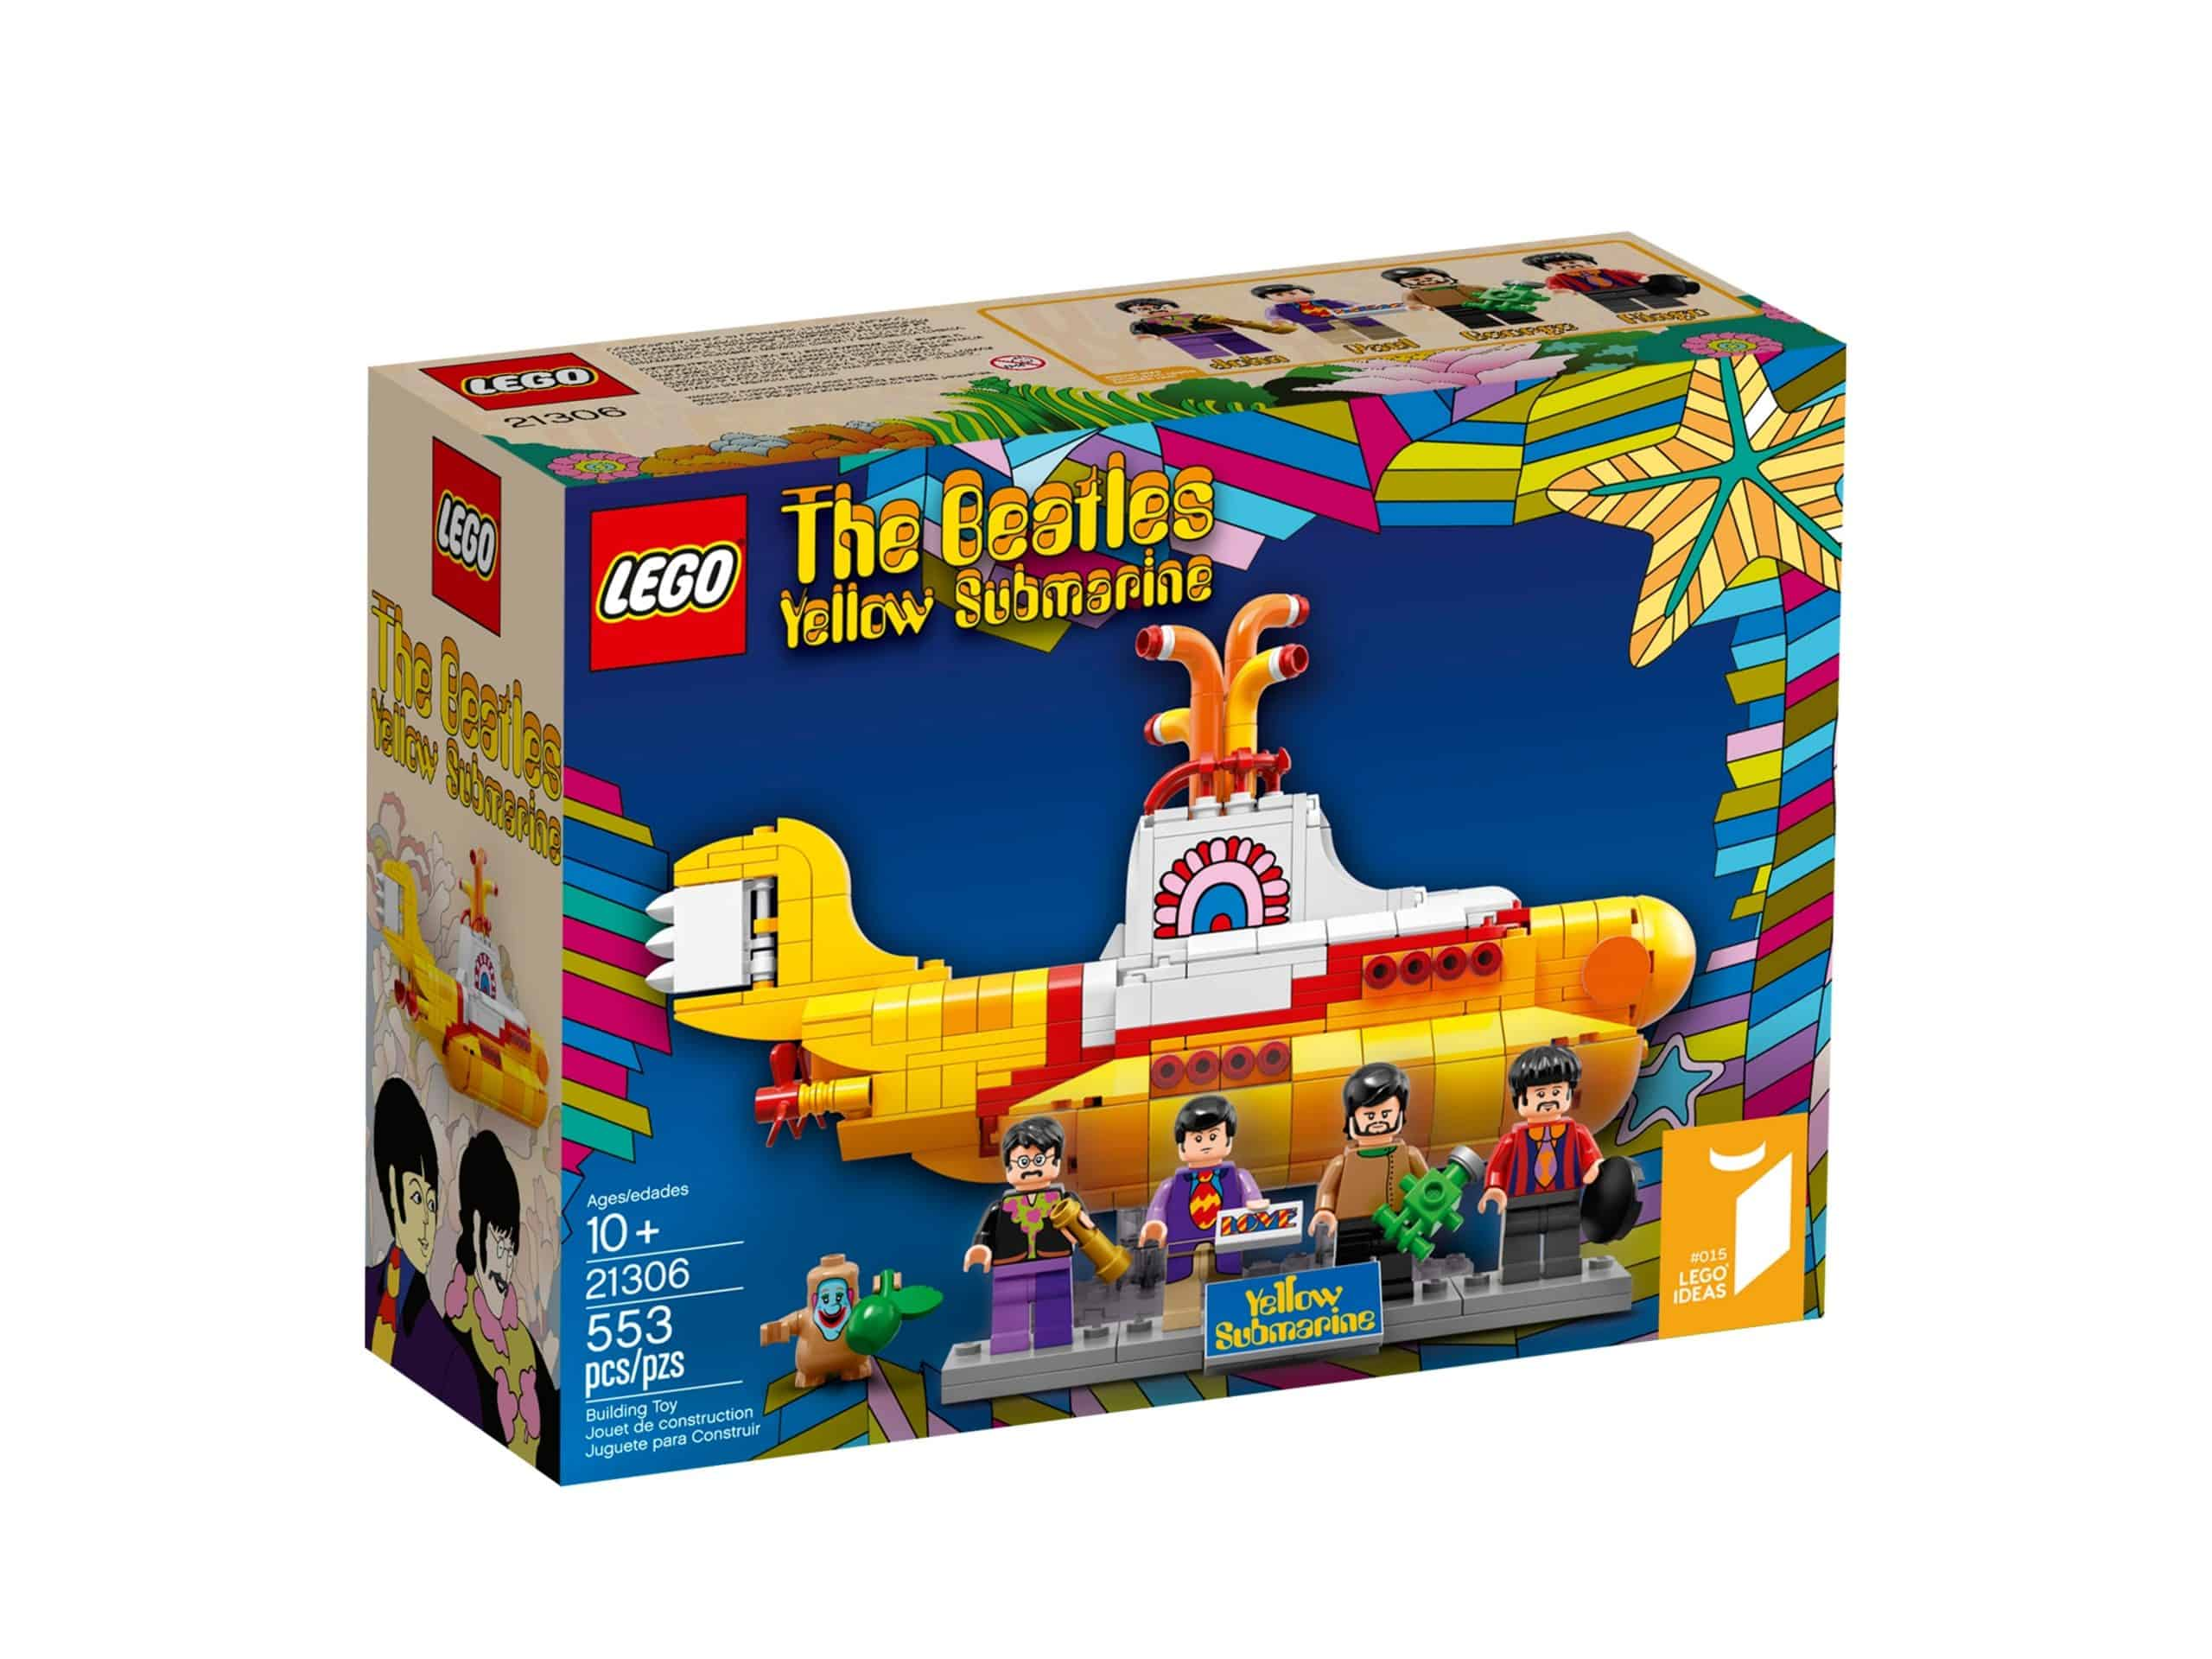 lego 21306 yellow submarine scaled